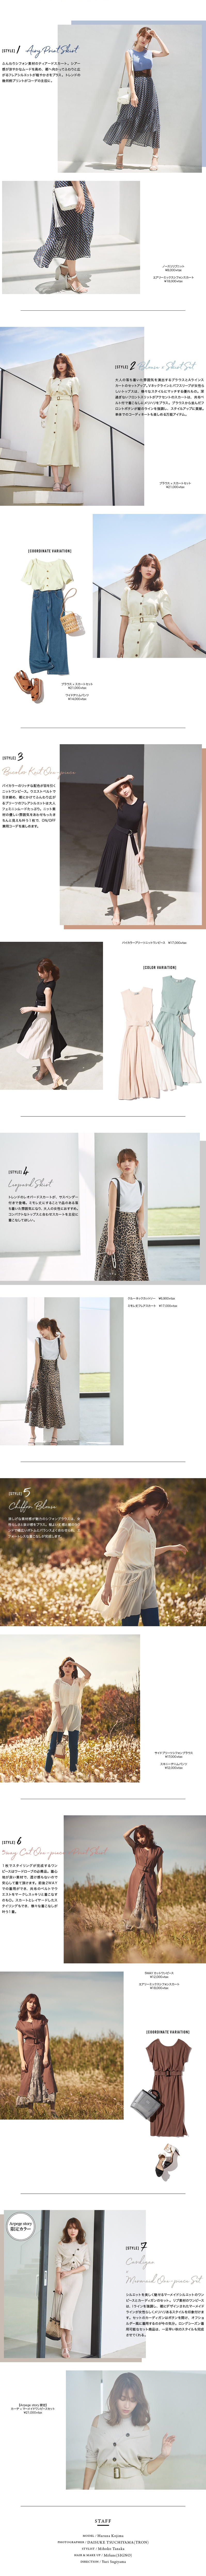 WEB ALBUM vol.41 - Rirandture × 小嶋陽菜